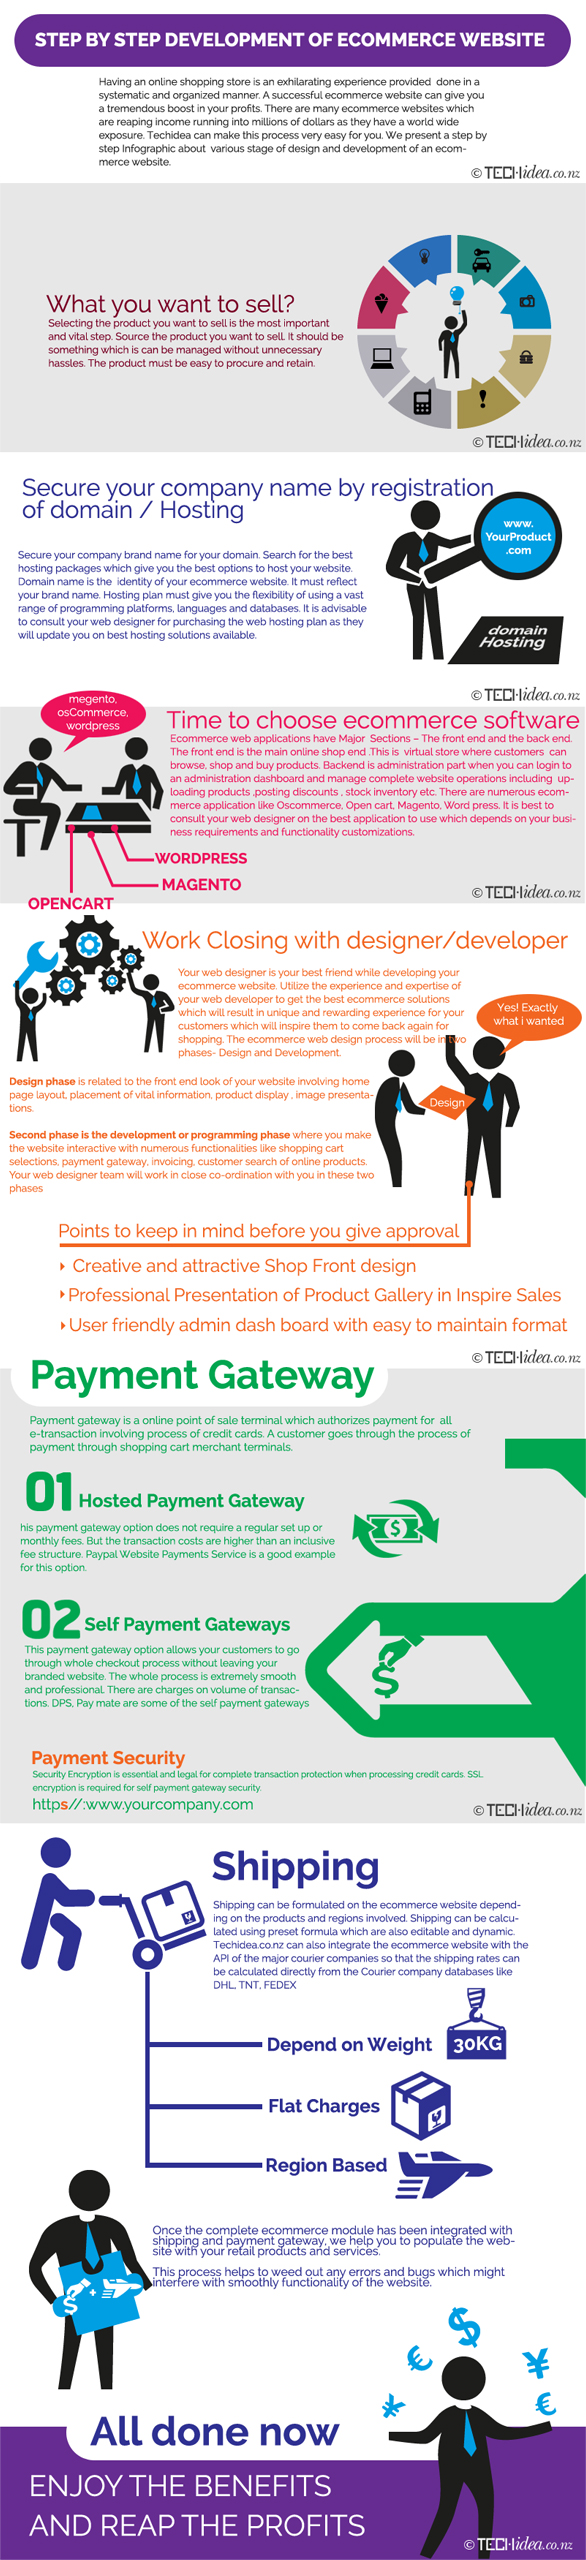 creative infographic for eCommerce website development